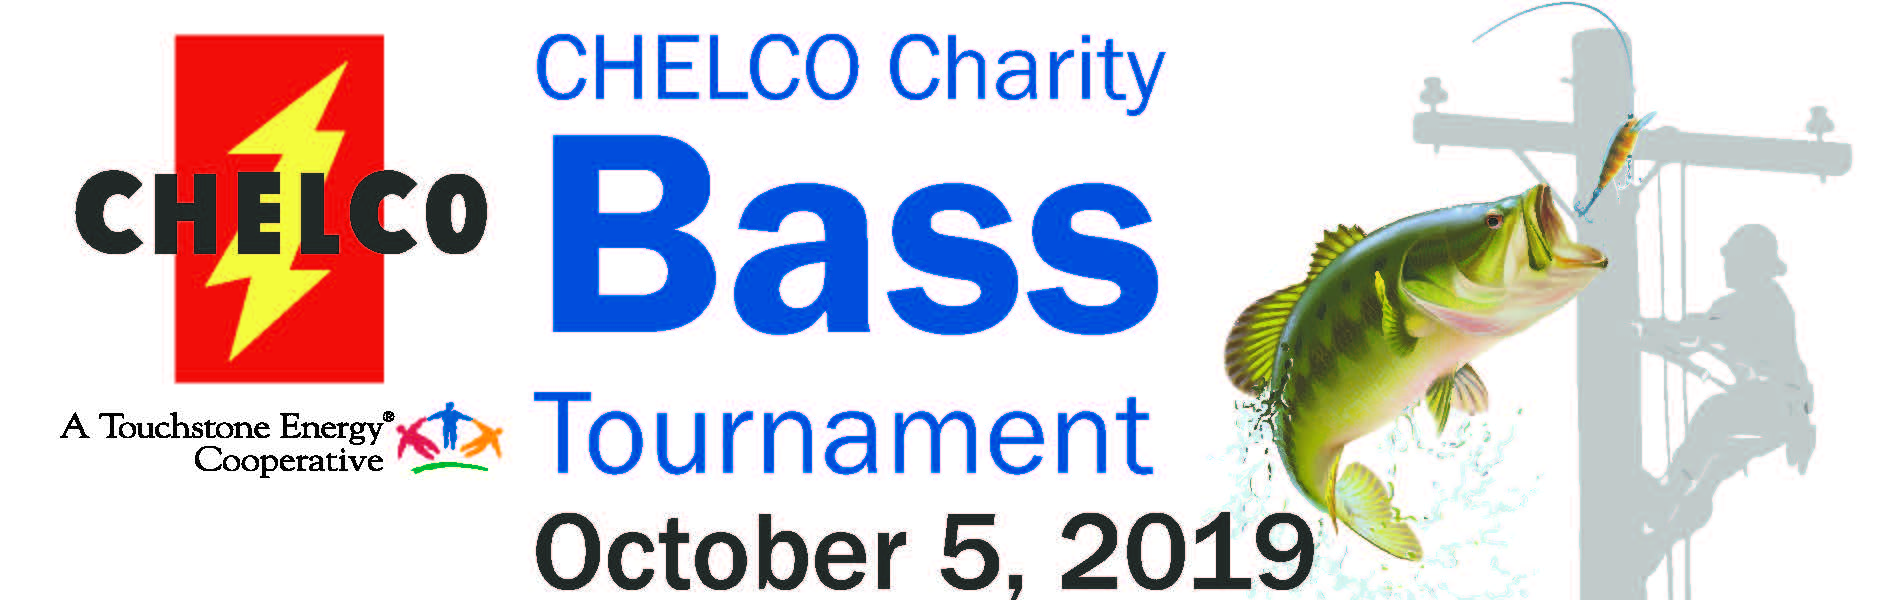 CHELCO Charity Bass Tournament